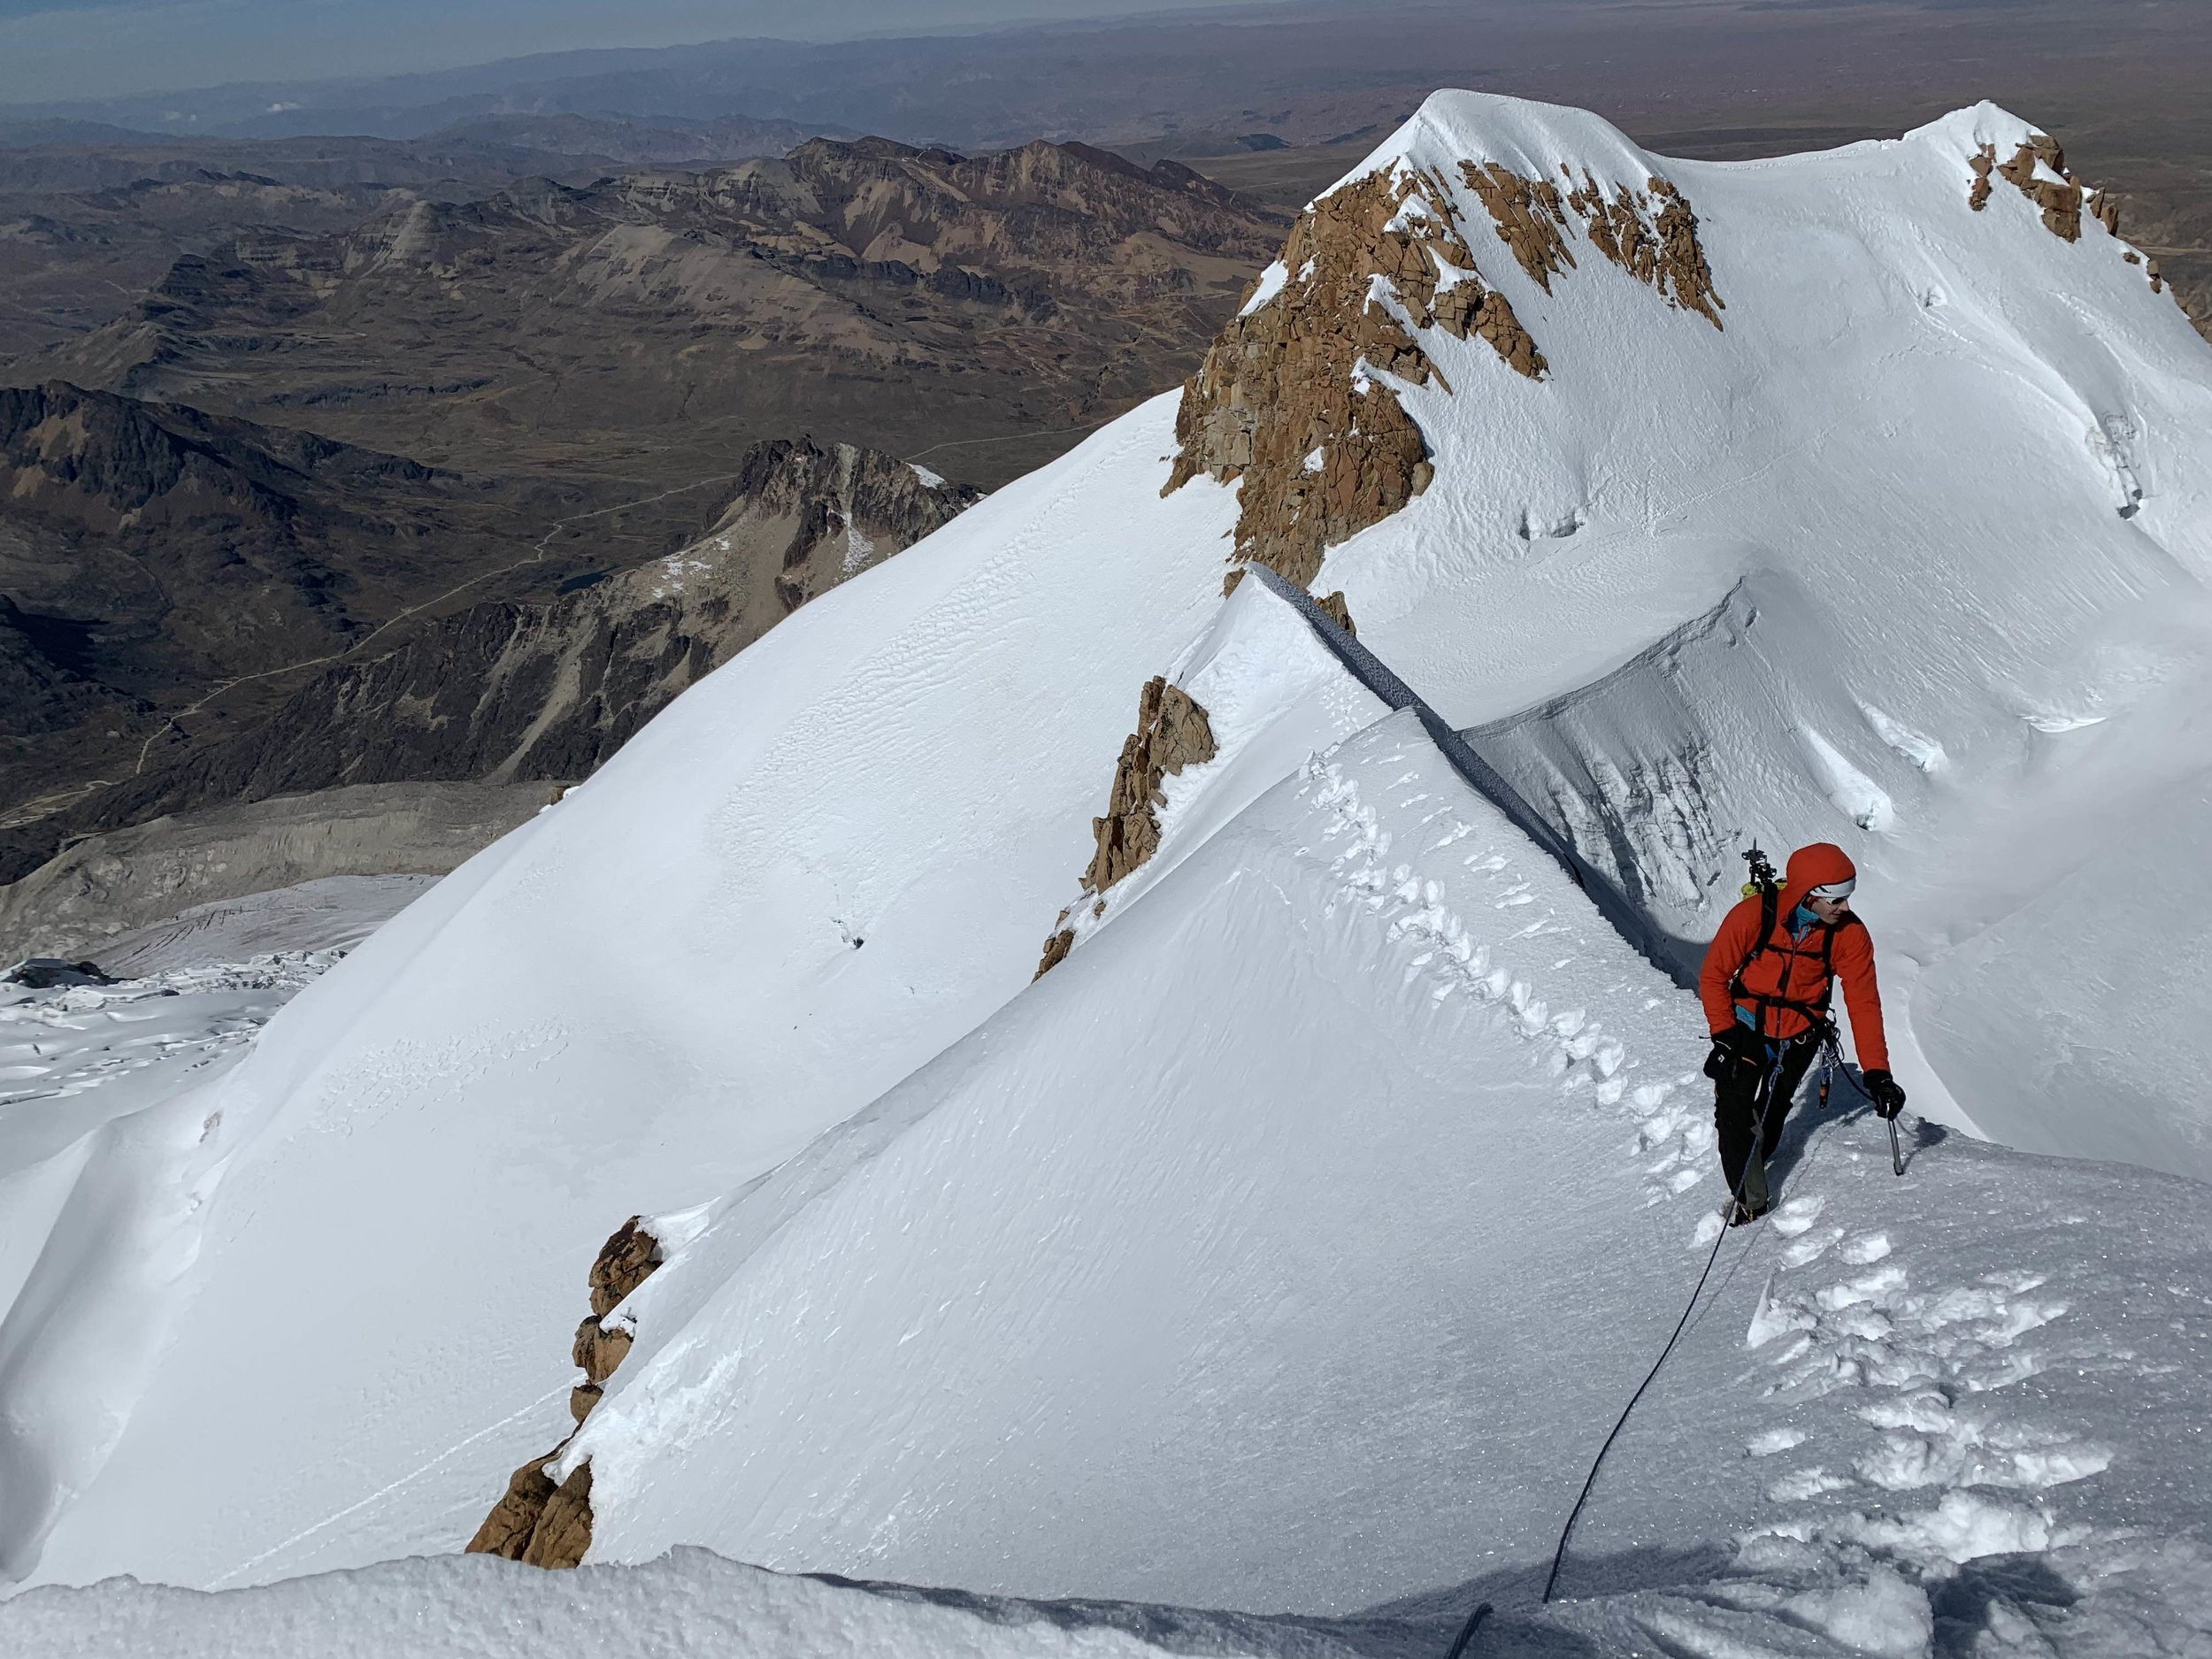 Finish off that summit ridge